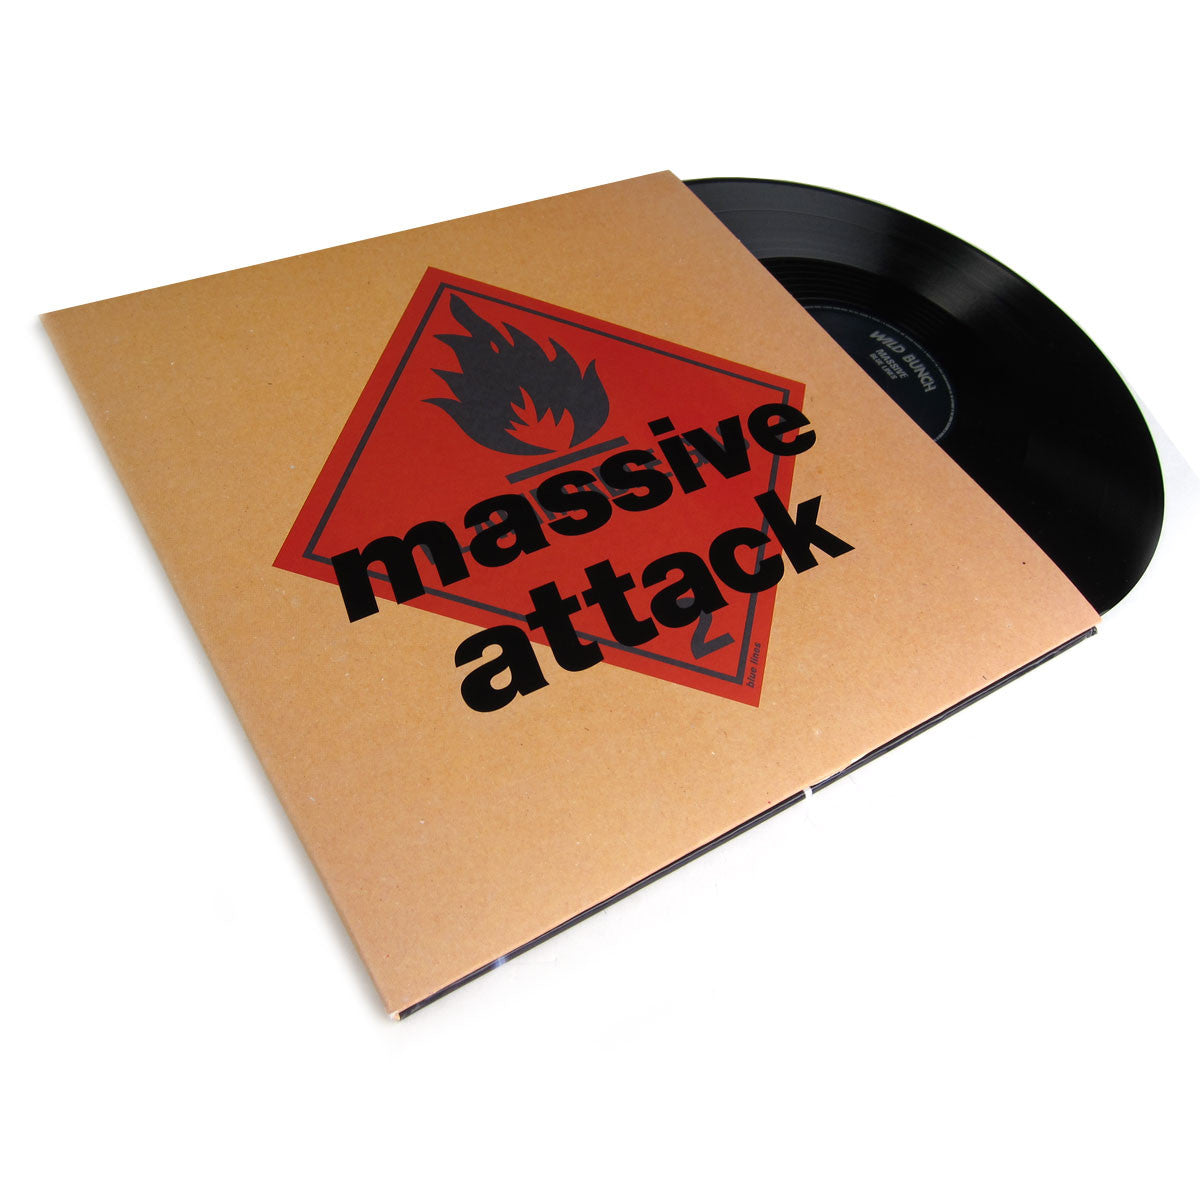 Massive Attack: Blue Lines (with CD + DVD) Vinyl 2LP Boxset